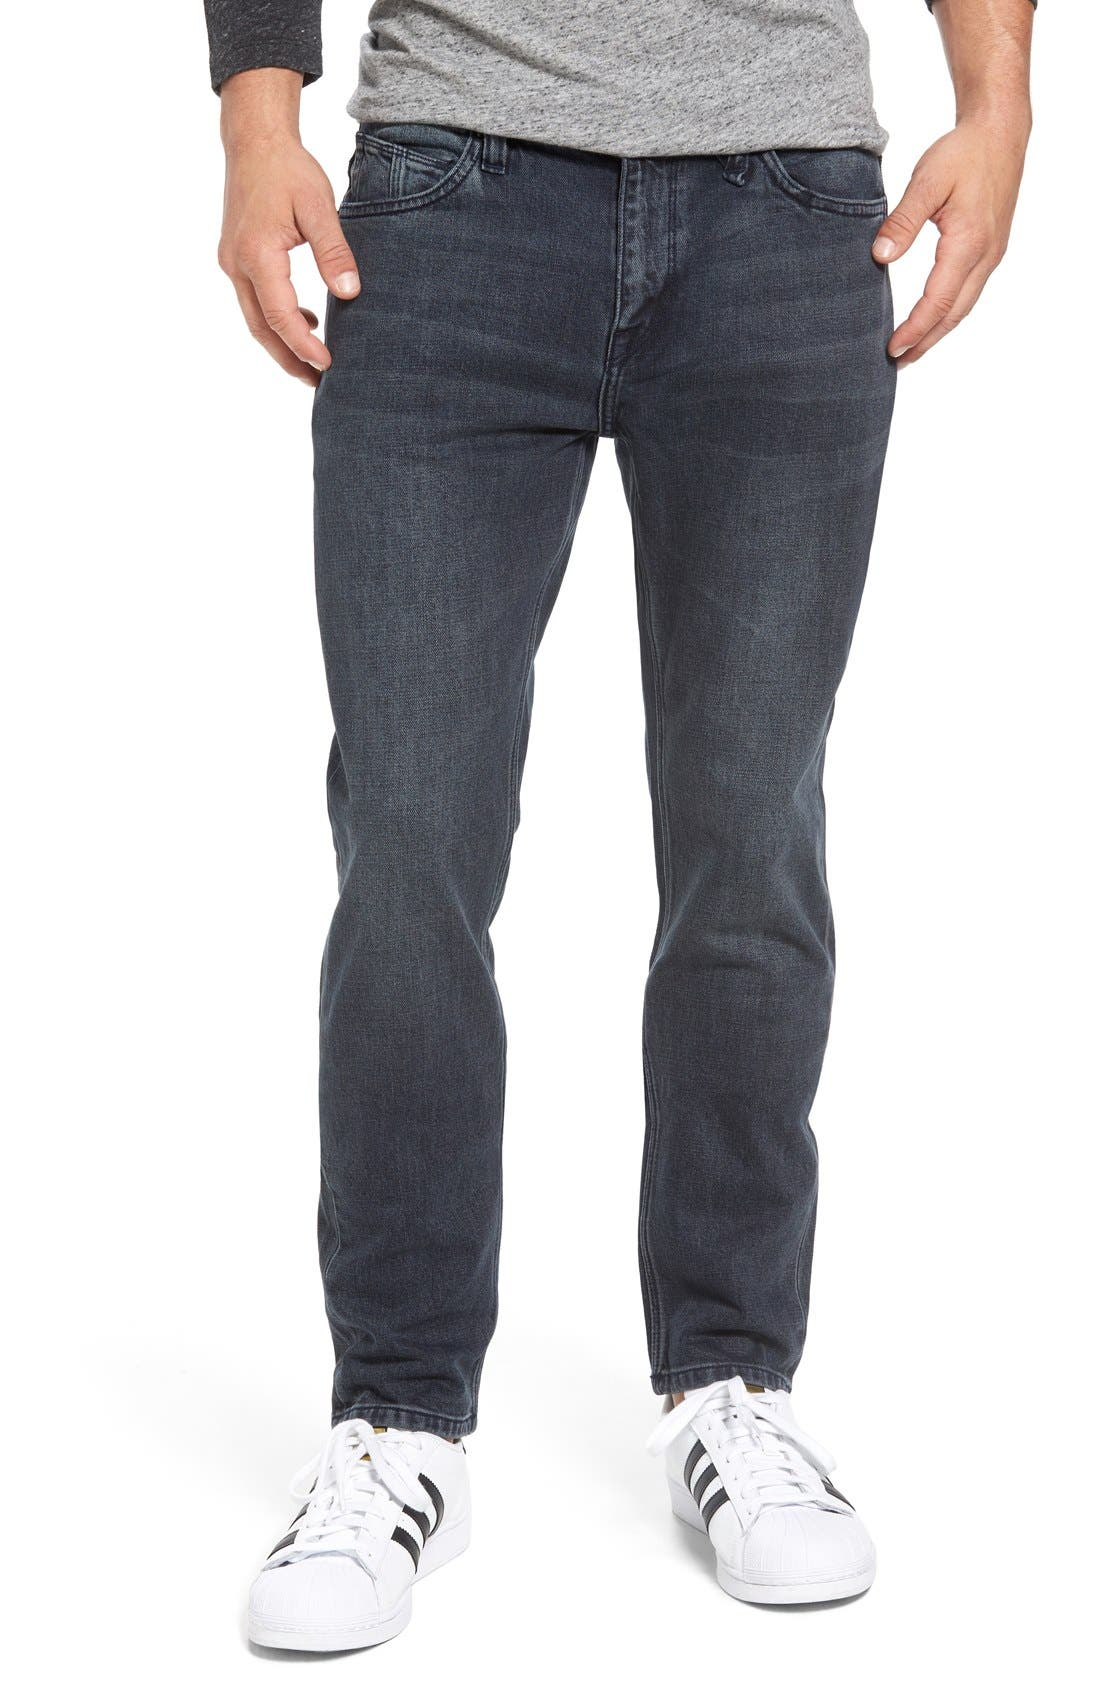 'Solver' Tapered Jeans,                             Main thumbnail 3, color,